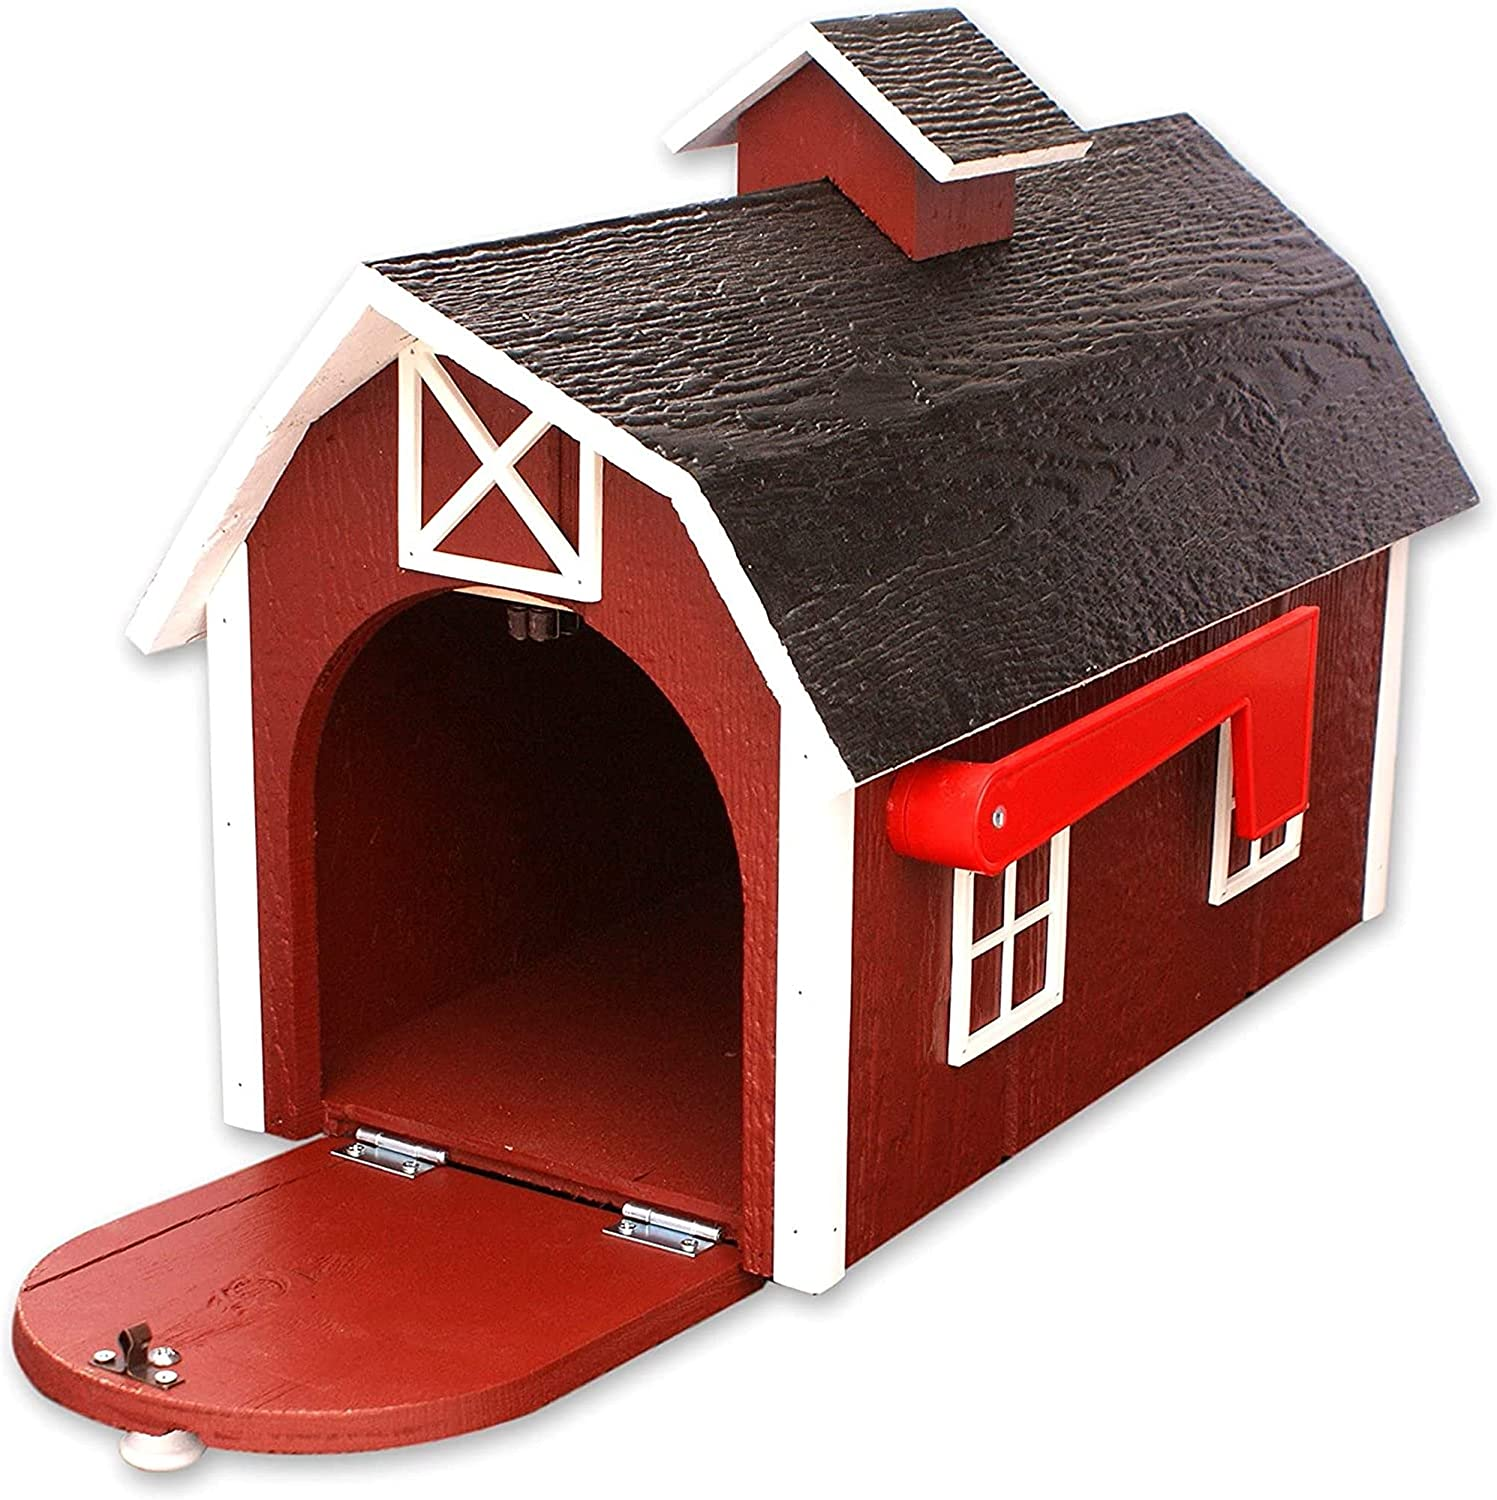 Deluxe store Wooden Mailbox Dutch Barn with favorite Style Red White Trim